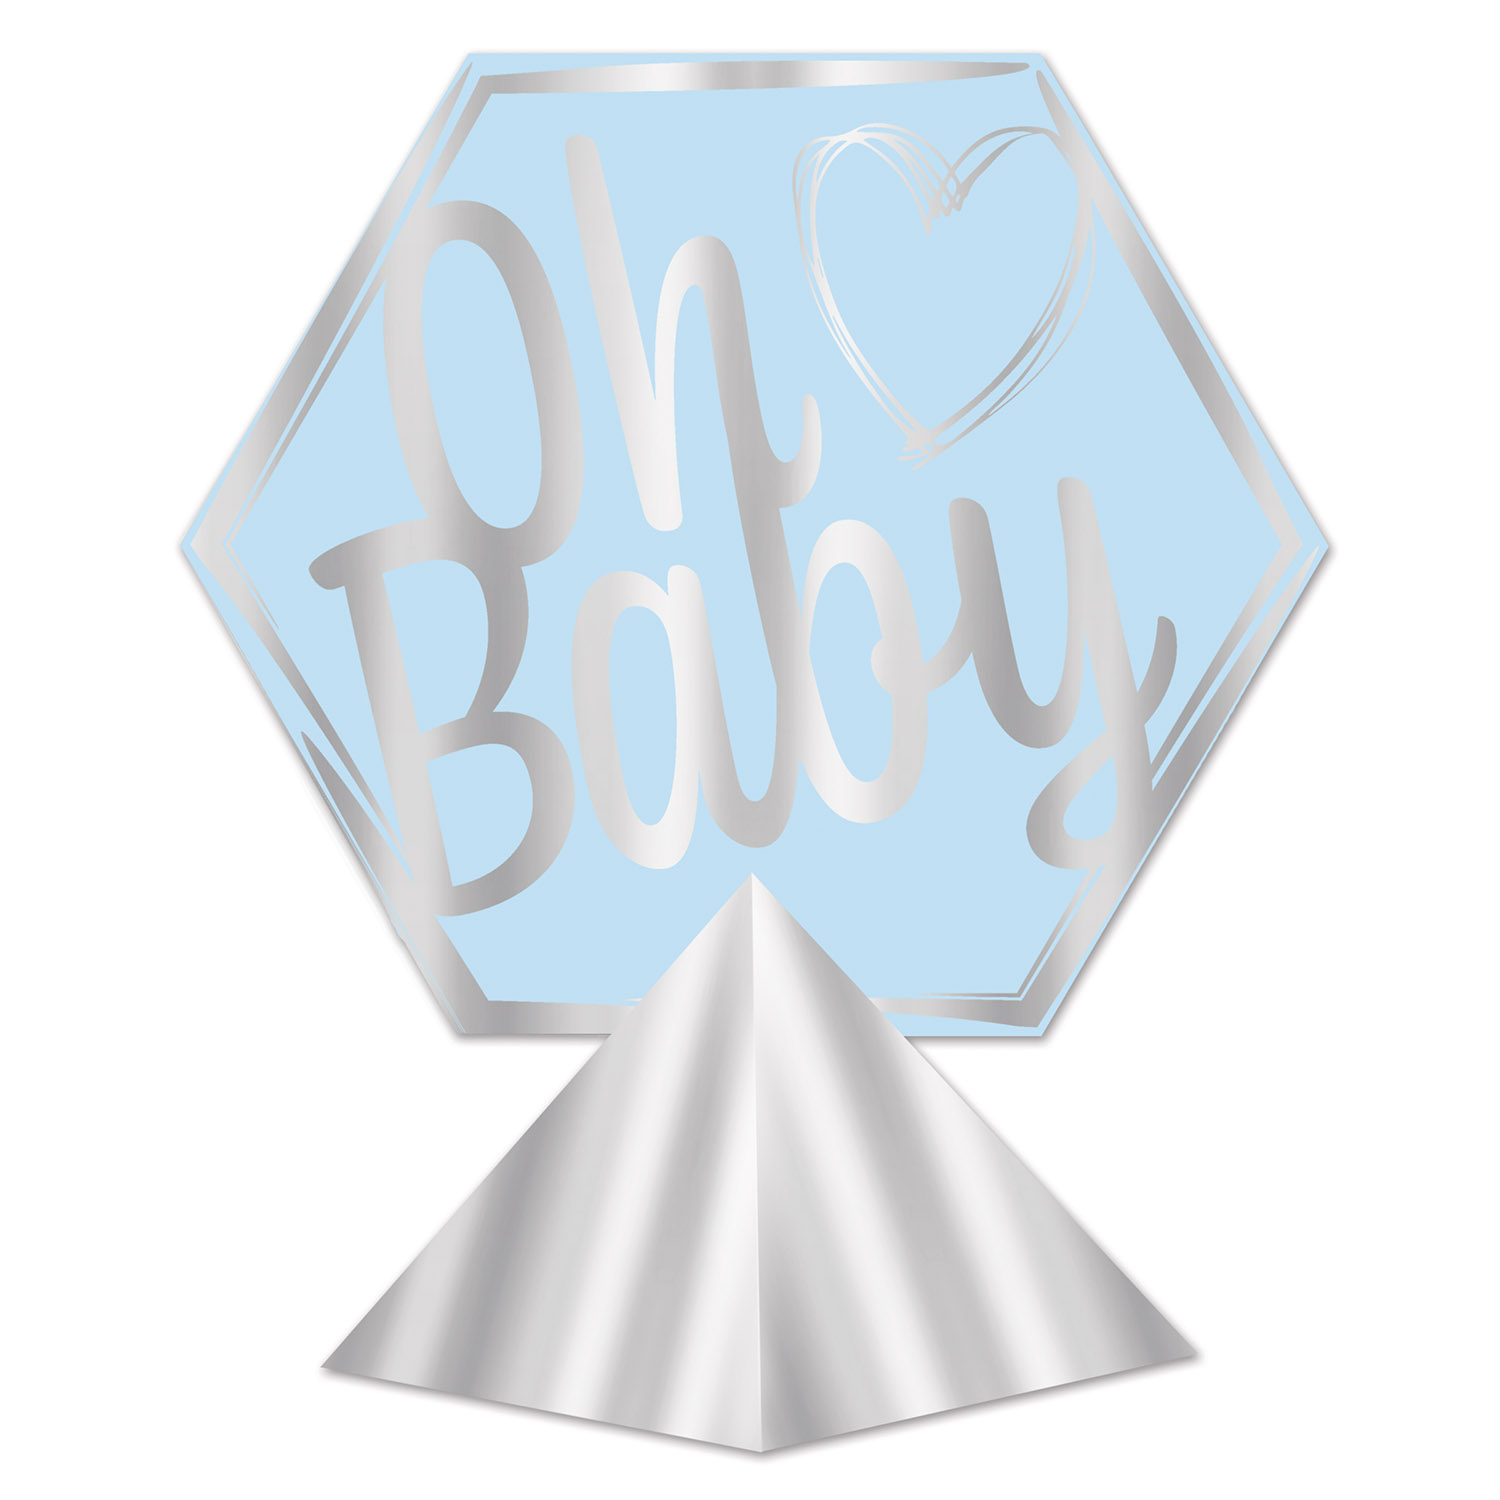 Image of 3-D FOIL OH BABY CENTERPIECE (12)